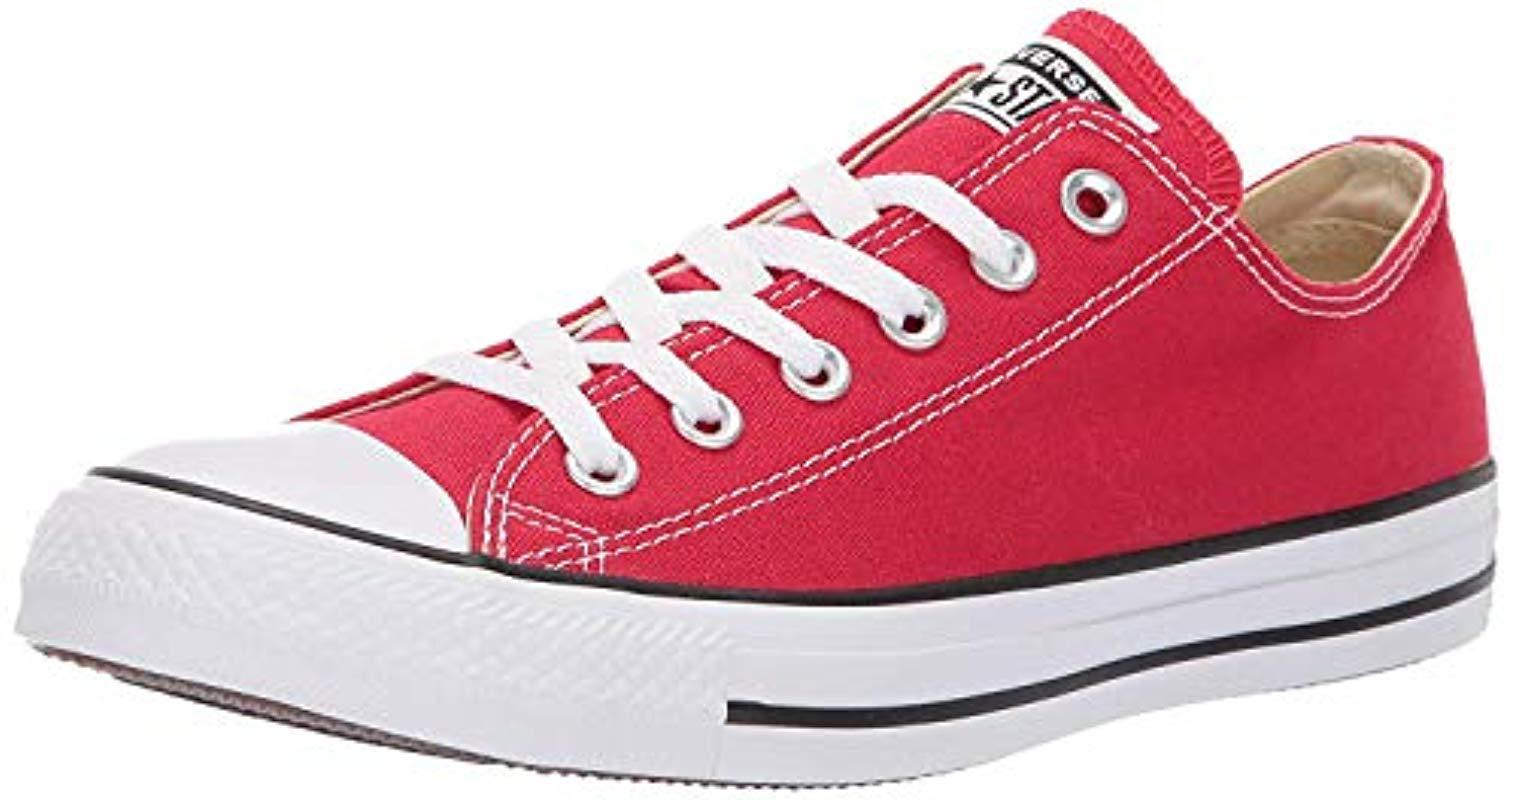 13ad99dc459 Lyst - Converse Unisex Chuck Taylor All Star Low Top Red Sneakers ...